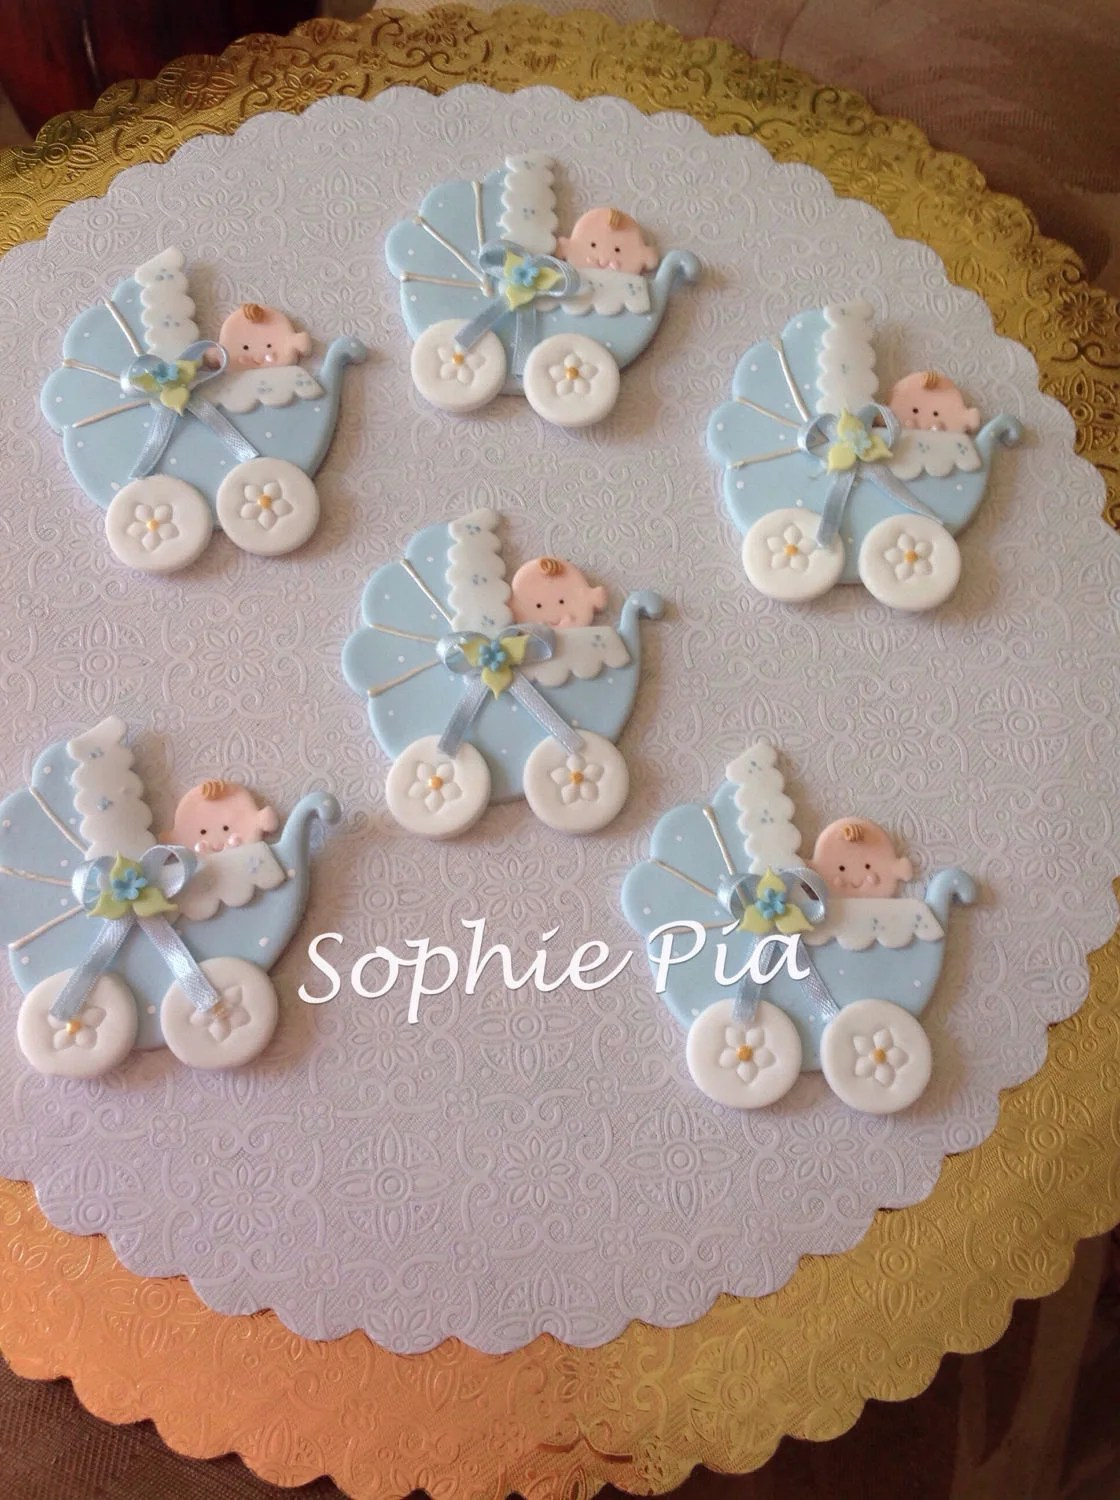 Baby Carriage Cake Decoration Baby Shower Decoration Cake Decoration Baby Shower Carriage Cake Topper Baby Carriage Decoration